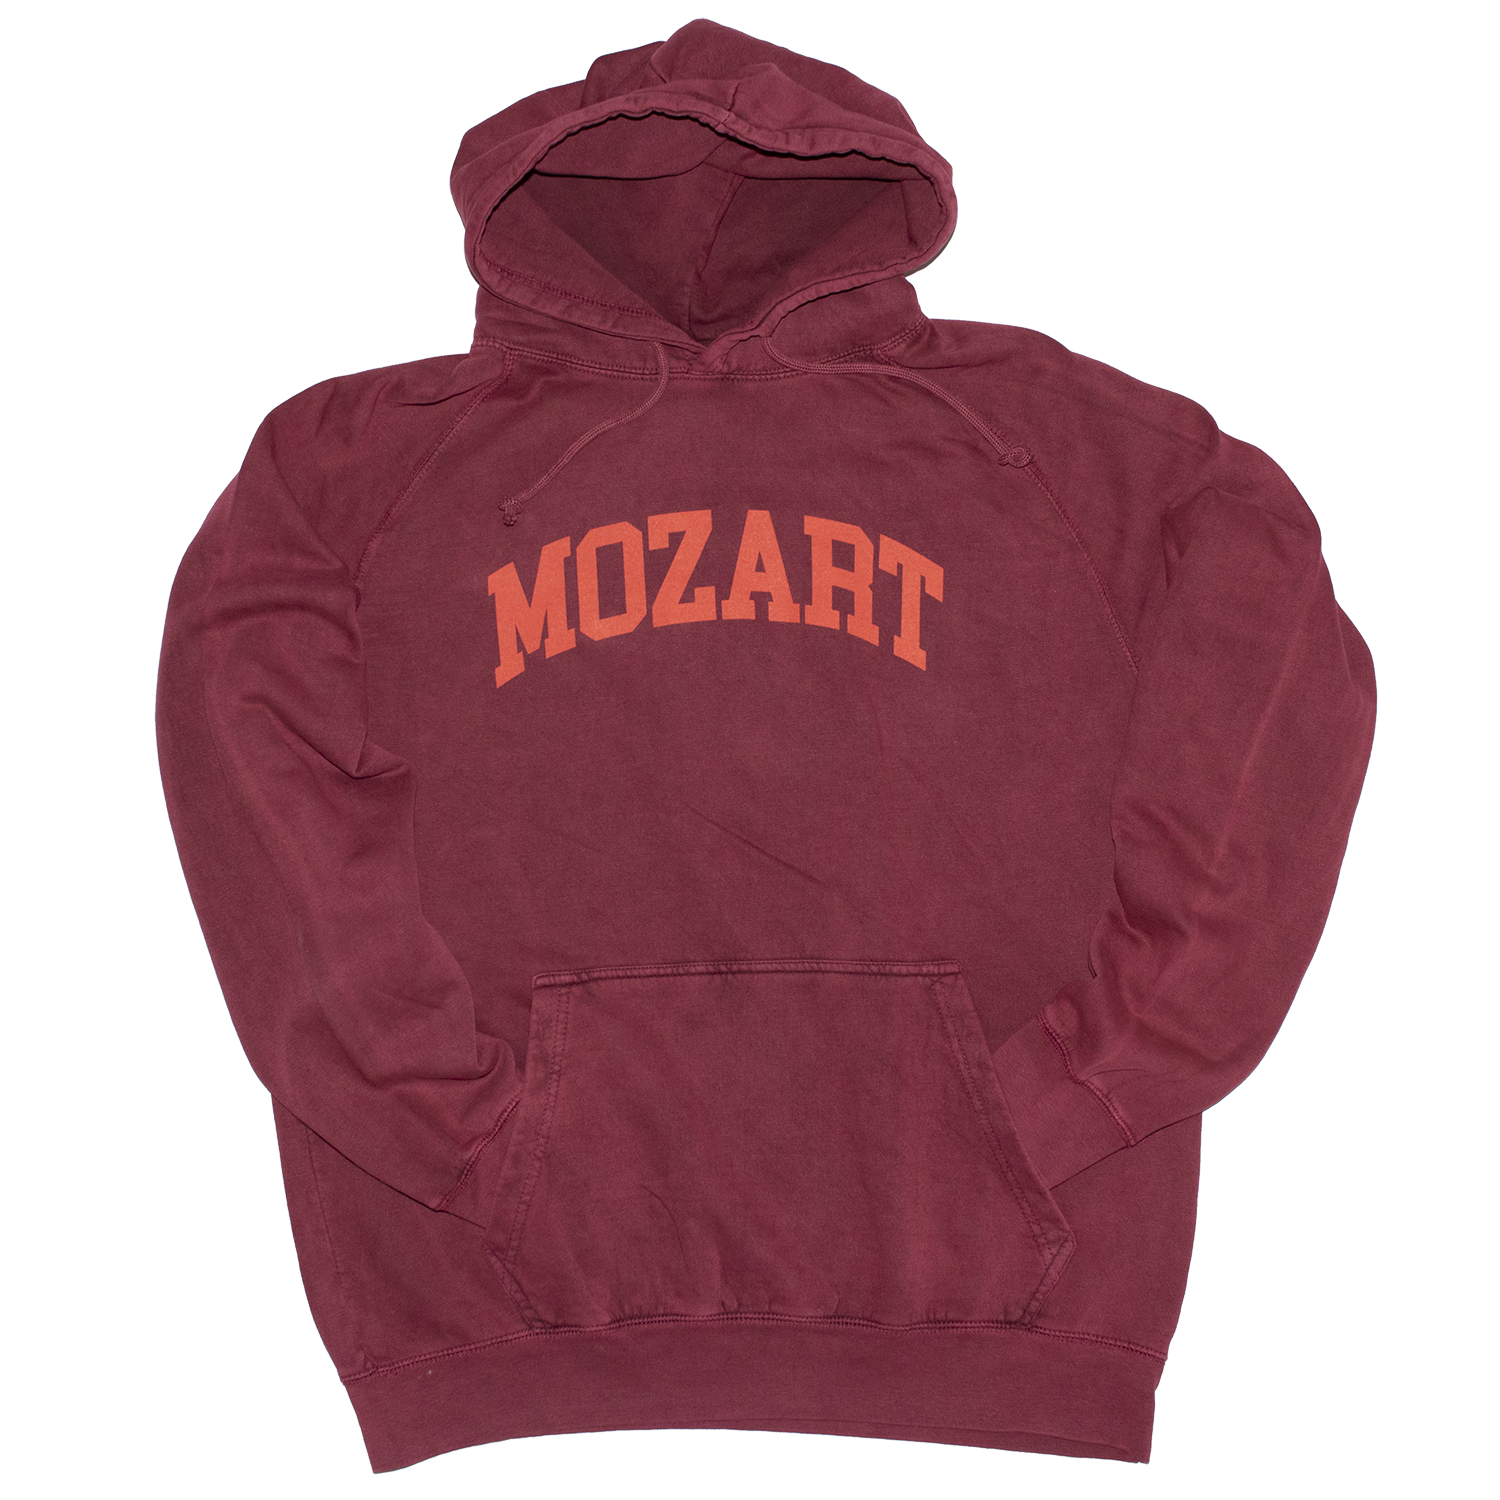 Mozart Garment Dyed Purple Rust Vintage Style Relaxed Fit Mens Hoodie